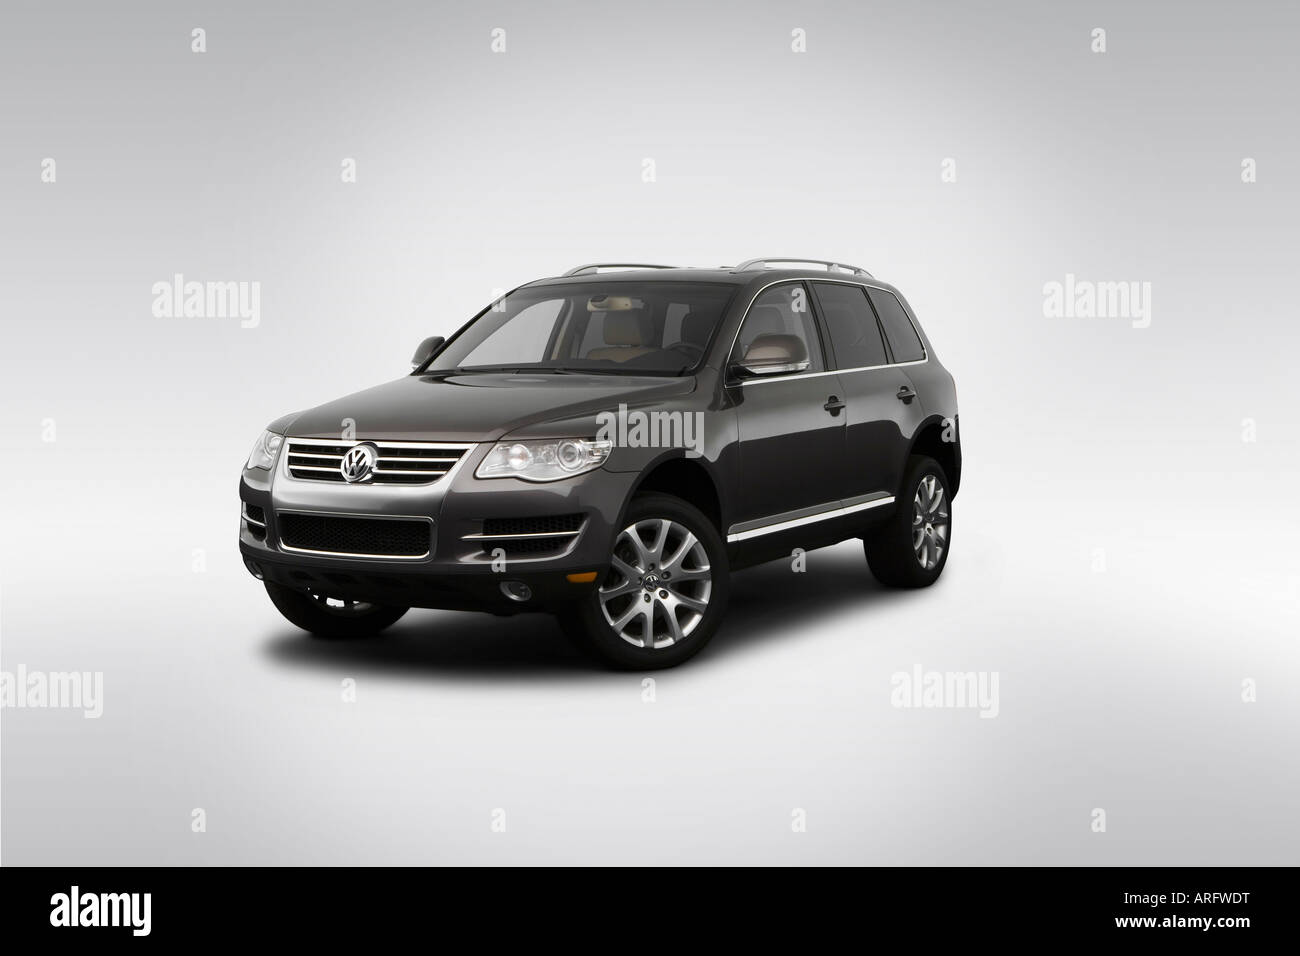 Touareg 2 Stock Photos Images Alamy V8 Engine Diagram 2008 Volkswagen In Gray Front Angle View Image